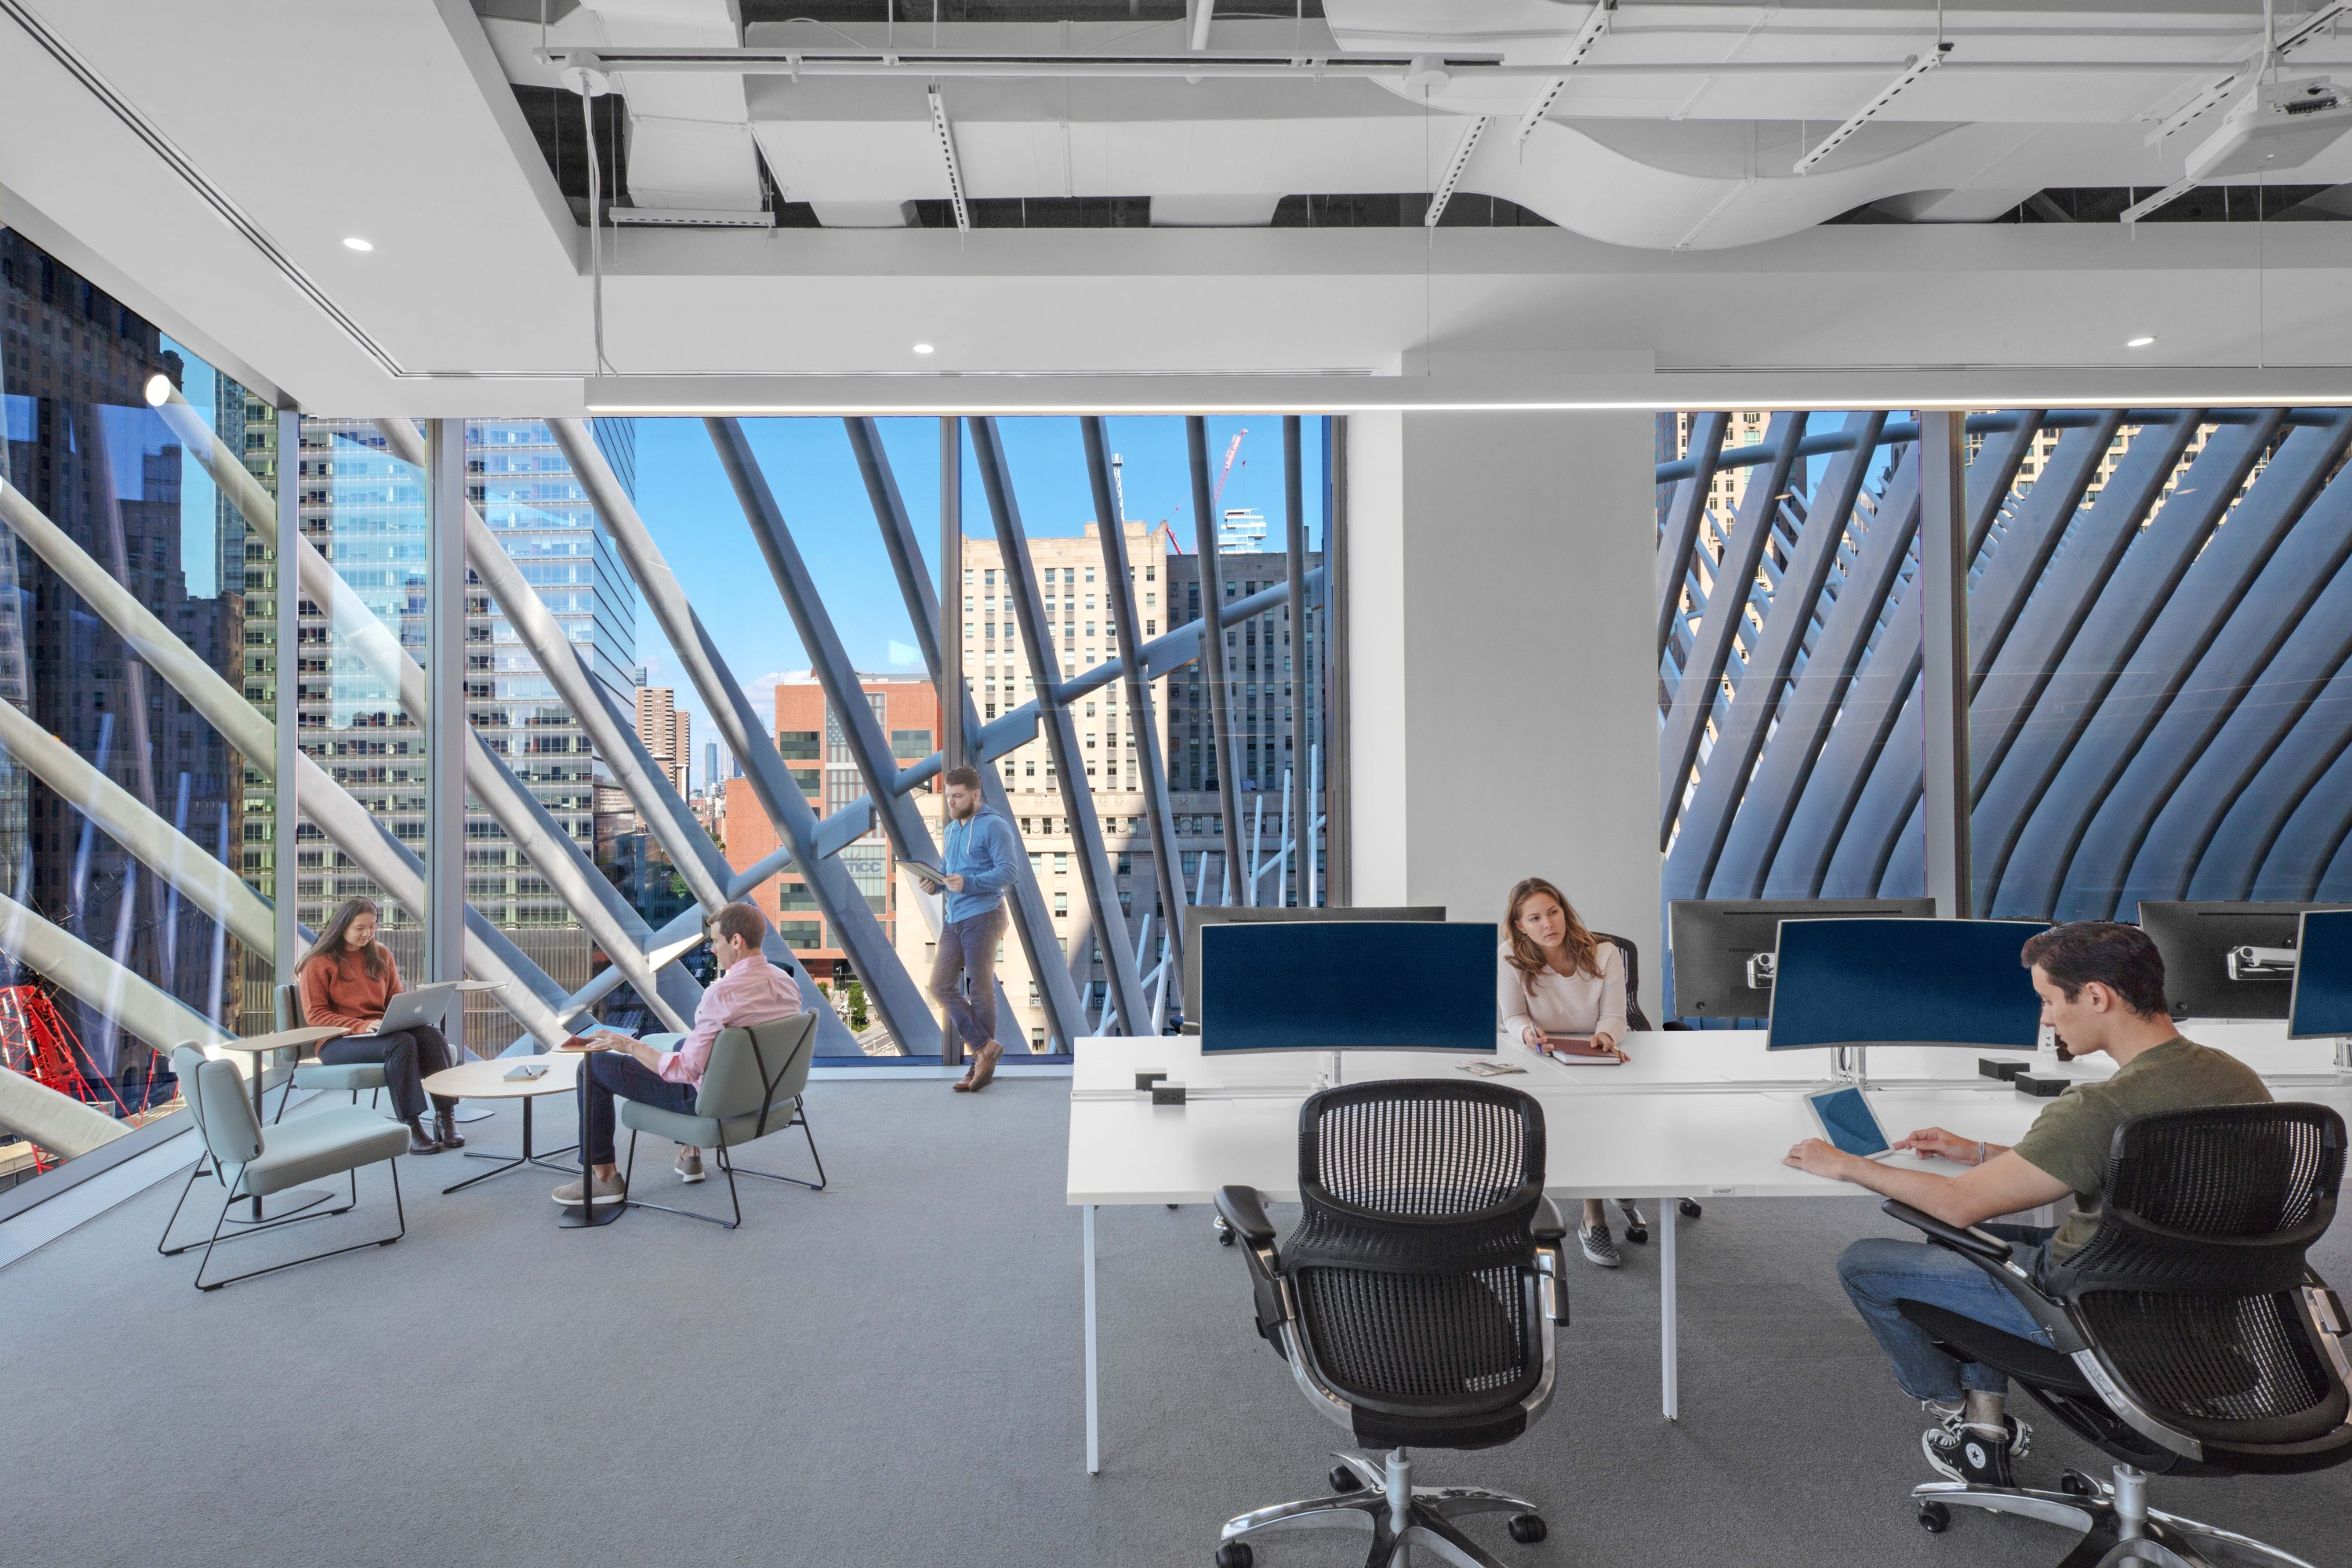 Figure 1: The WPP Campus at 3 World Trade Center houses 4,100 employees from eight different creative media agencies with a variety of workspaces and acoustic accommodations to meet worker needs. Credit Eric Laignel